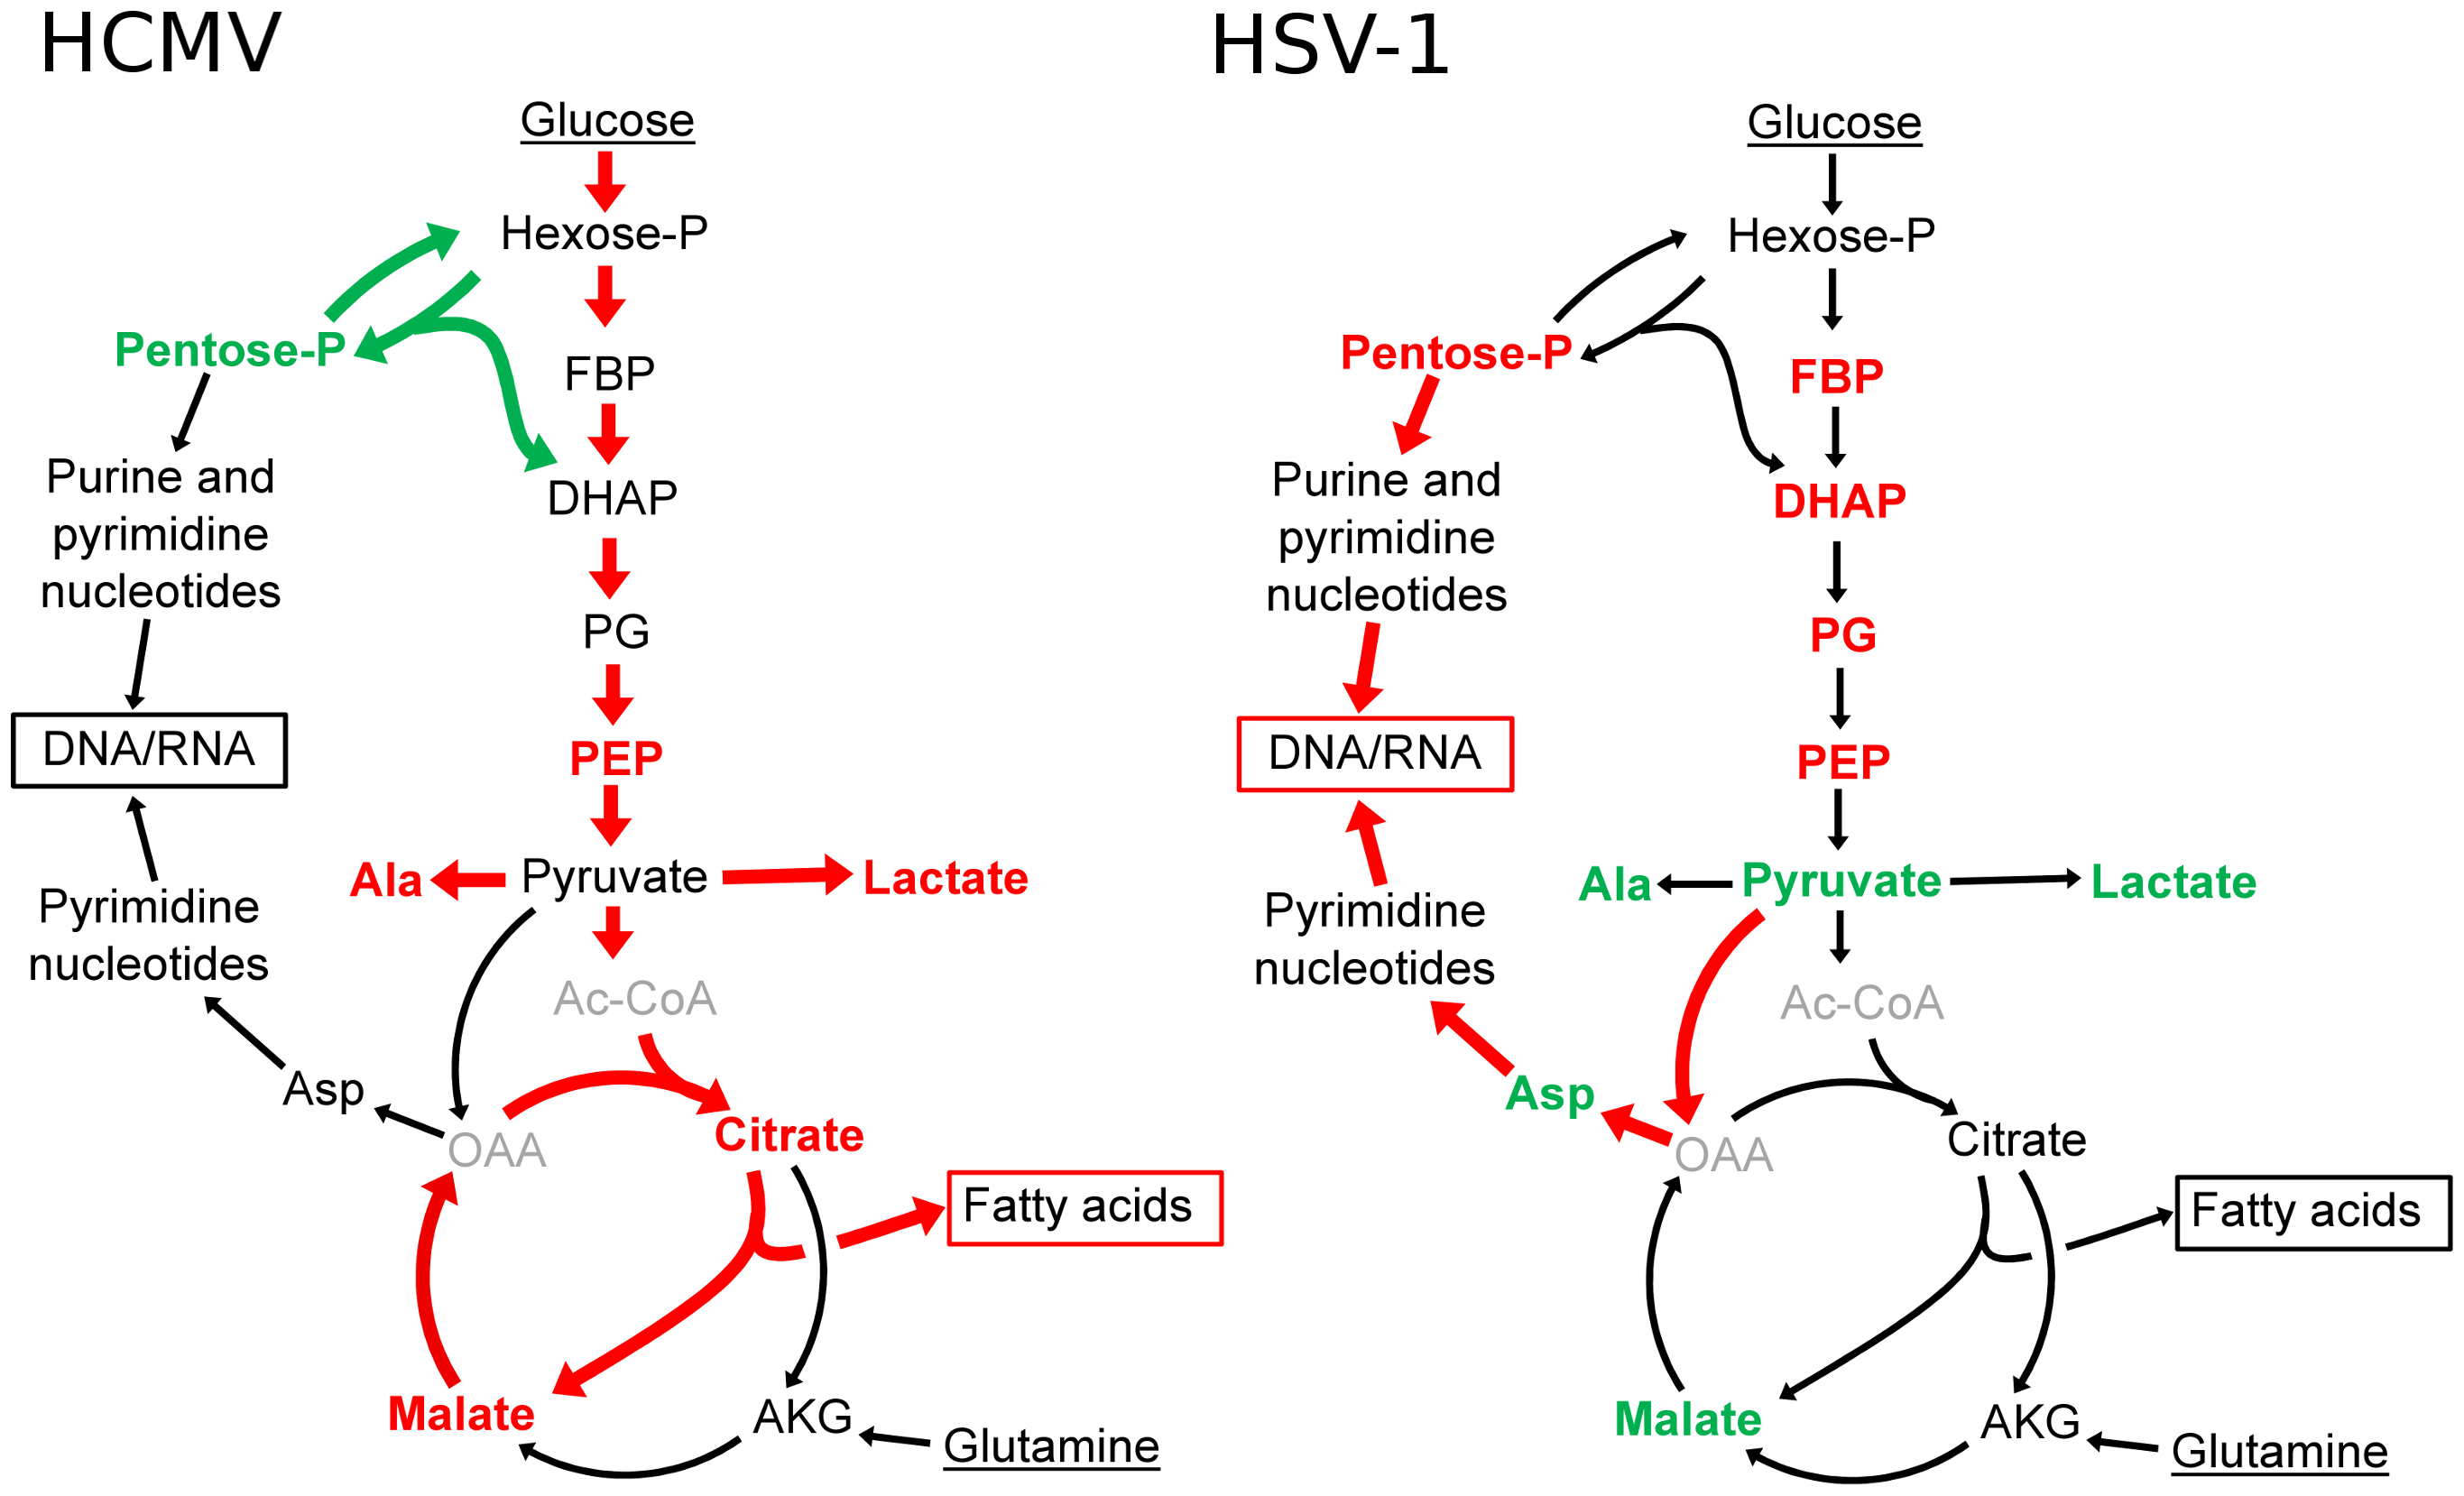 Divergent effects of HCMV and HSV-1 on central carbon metabolism.